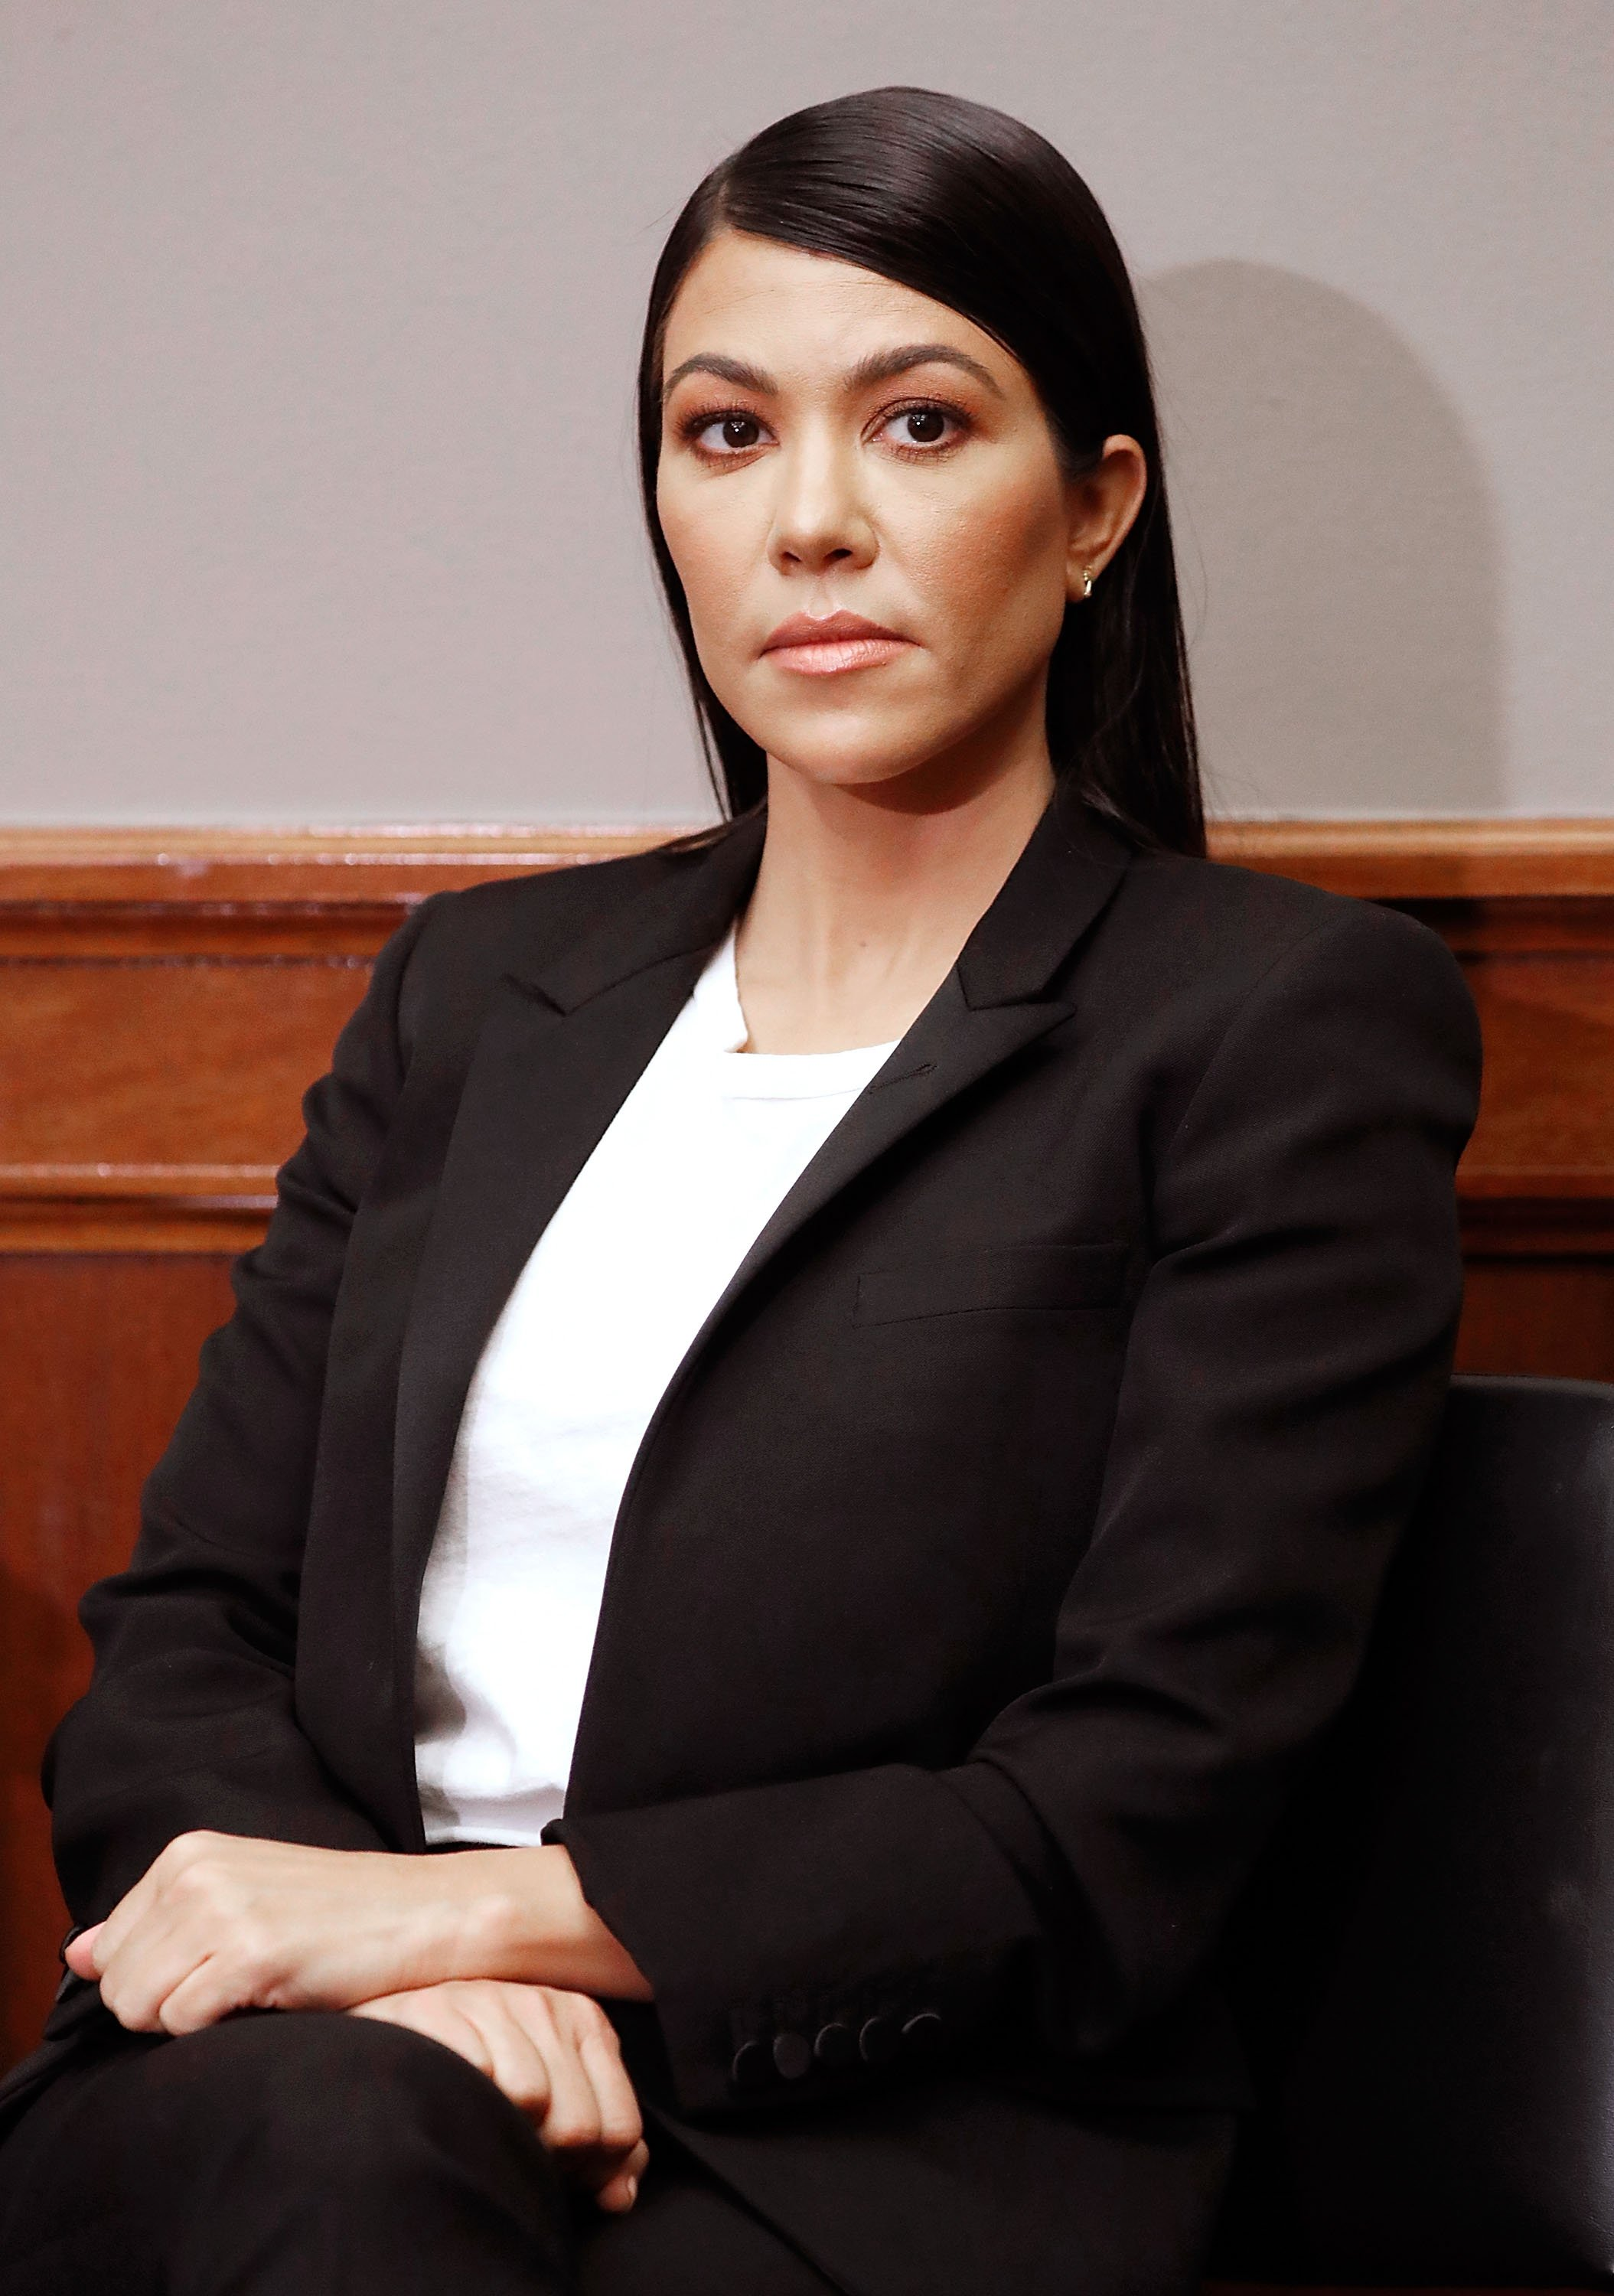 Kourtney Kardashian attends a briefing on Capitol Hill in support of bipartisan legislation on April 24, 2018, in Washington, DC. | Source: Getty Images.